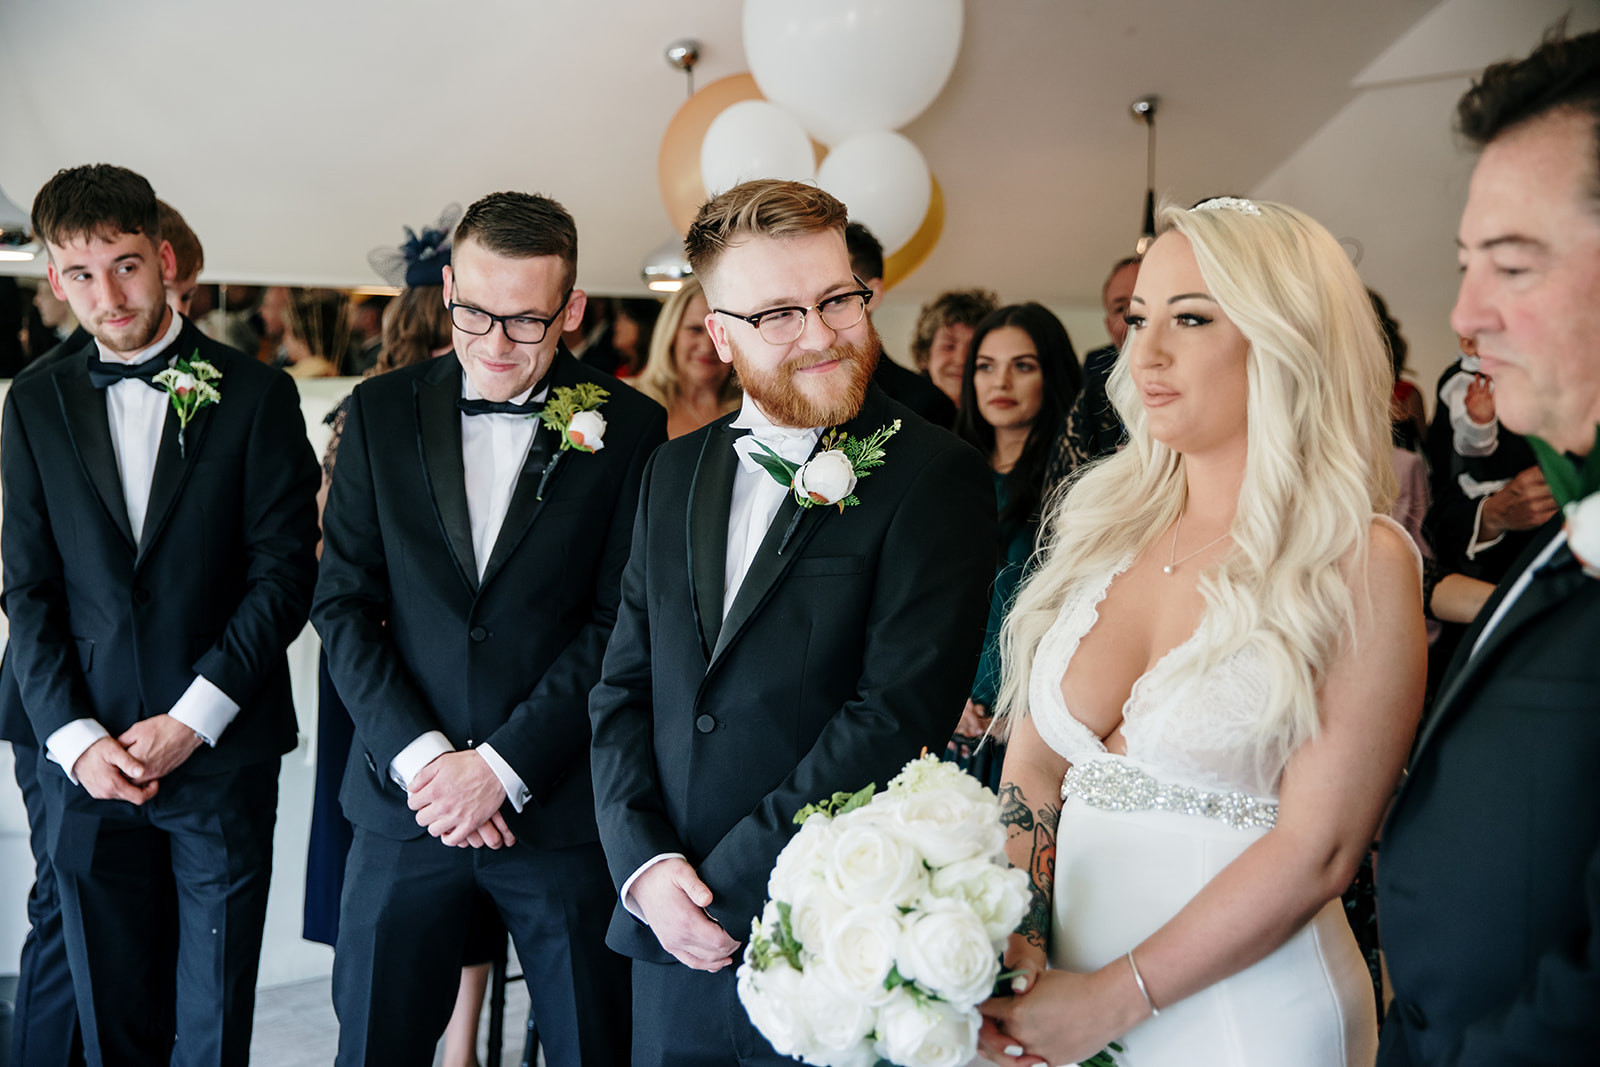 Wedding ceremony at a bar in manchester